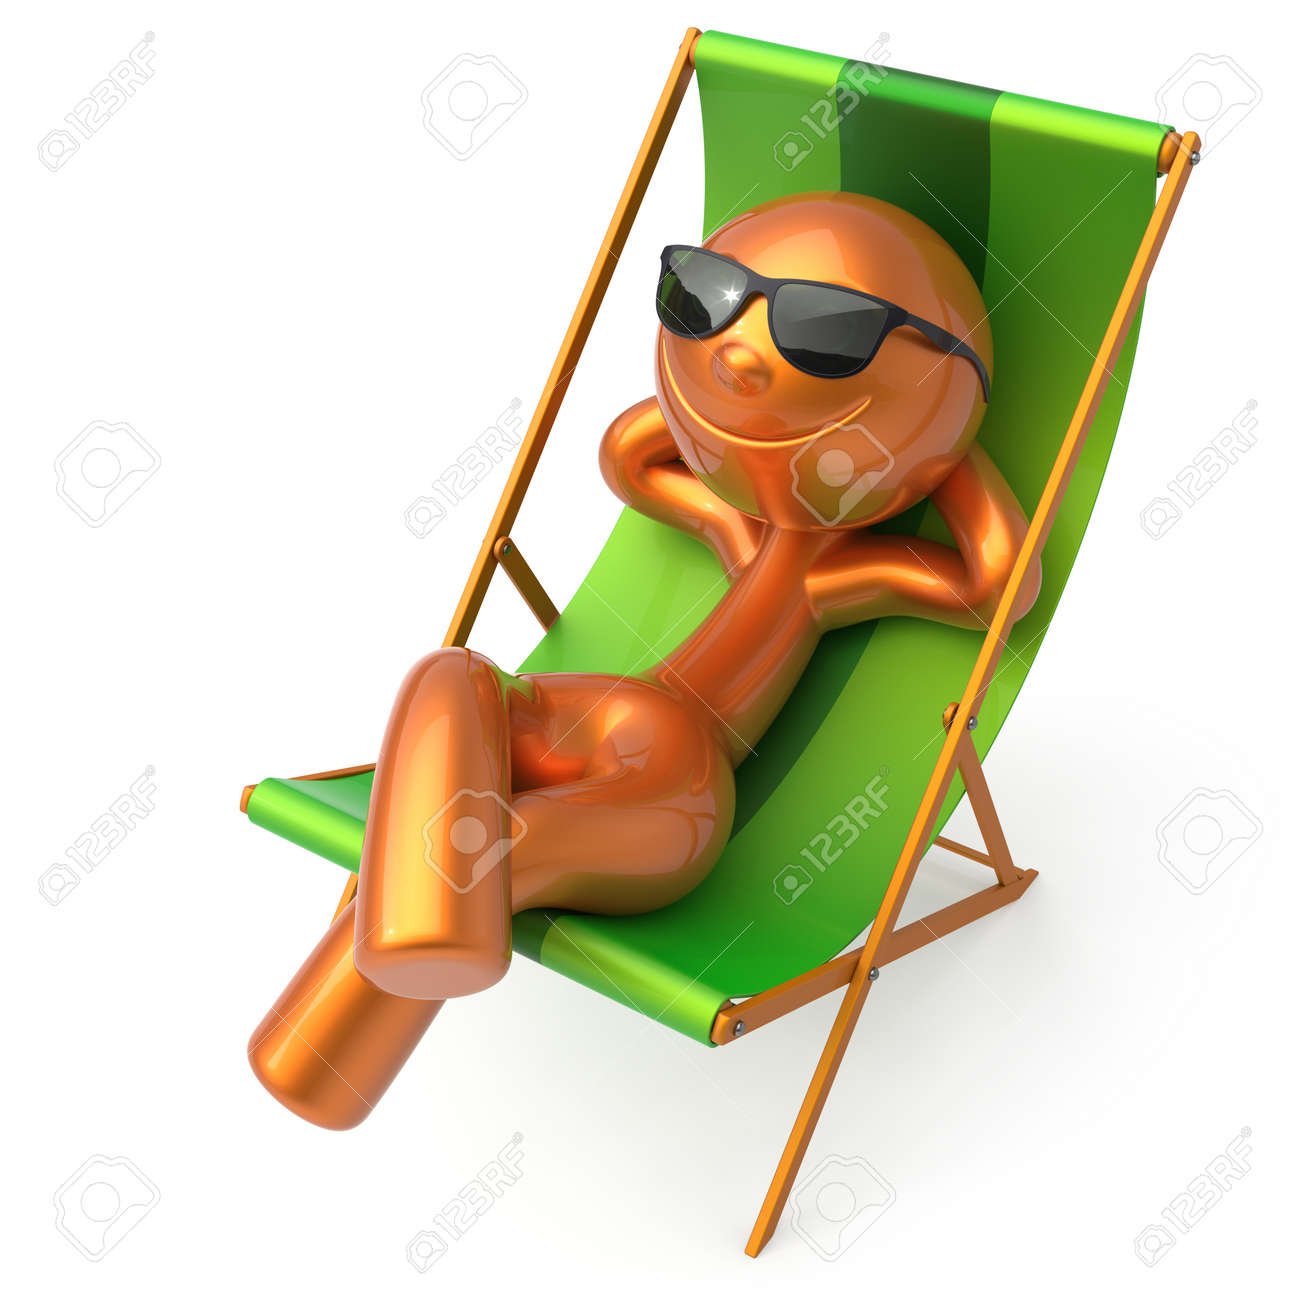 Sonnenliege clipart  Man Relaxing Beach Deck Chair Sunglasses Summer Cartoon Smiling ...